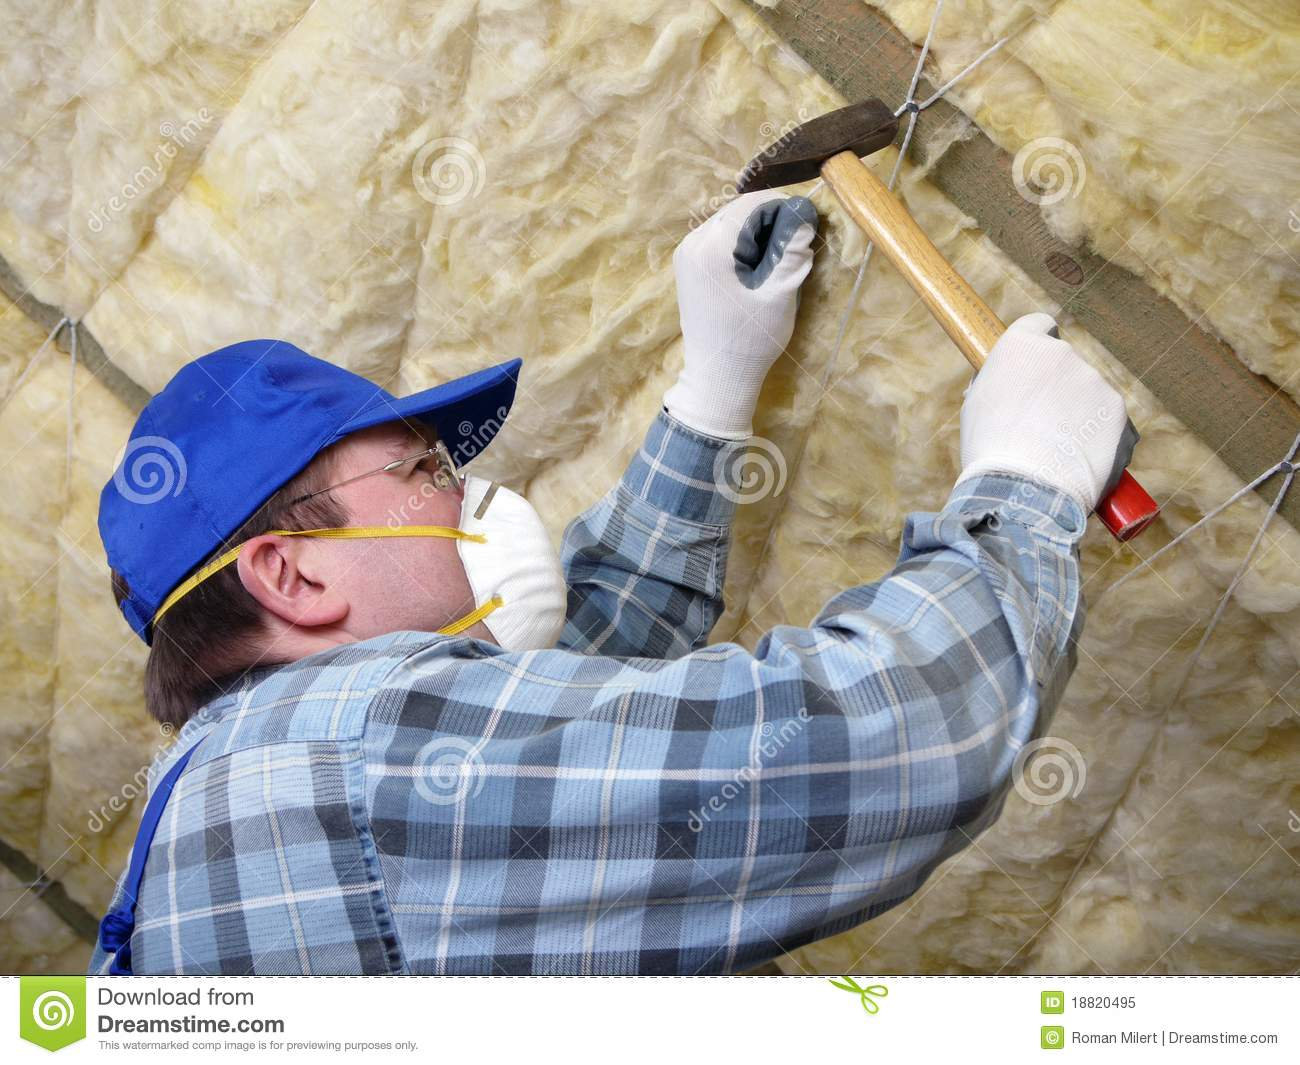 Attic thermal insulation royalty free stock photo image 18820495 - Attic thermal insulation ...